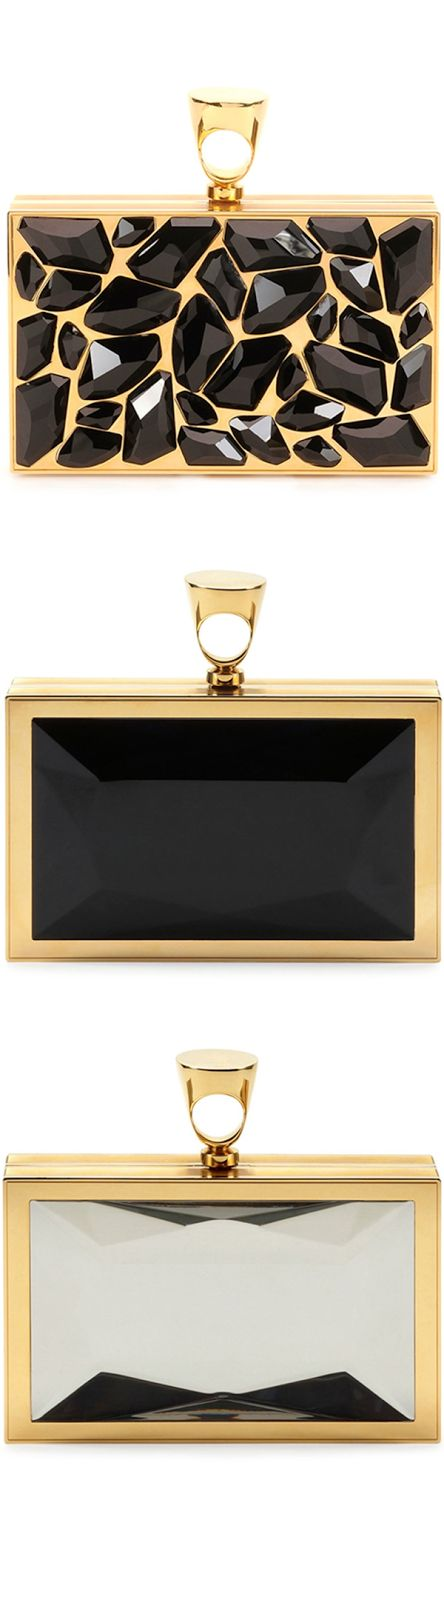 Tom Ford Crystal Brass Ring Clutch Bag